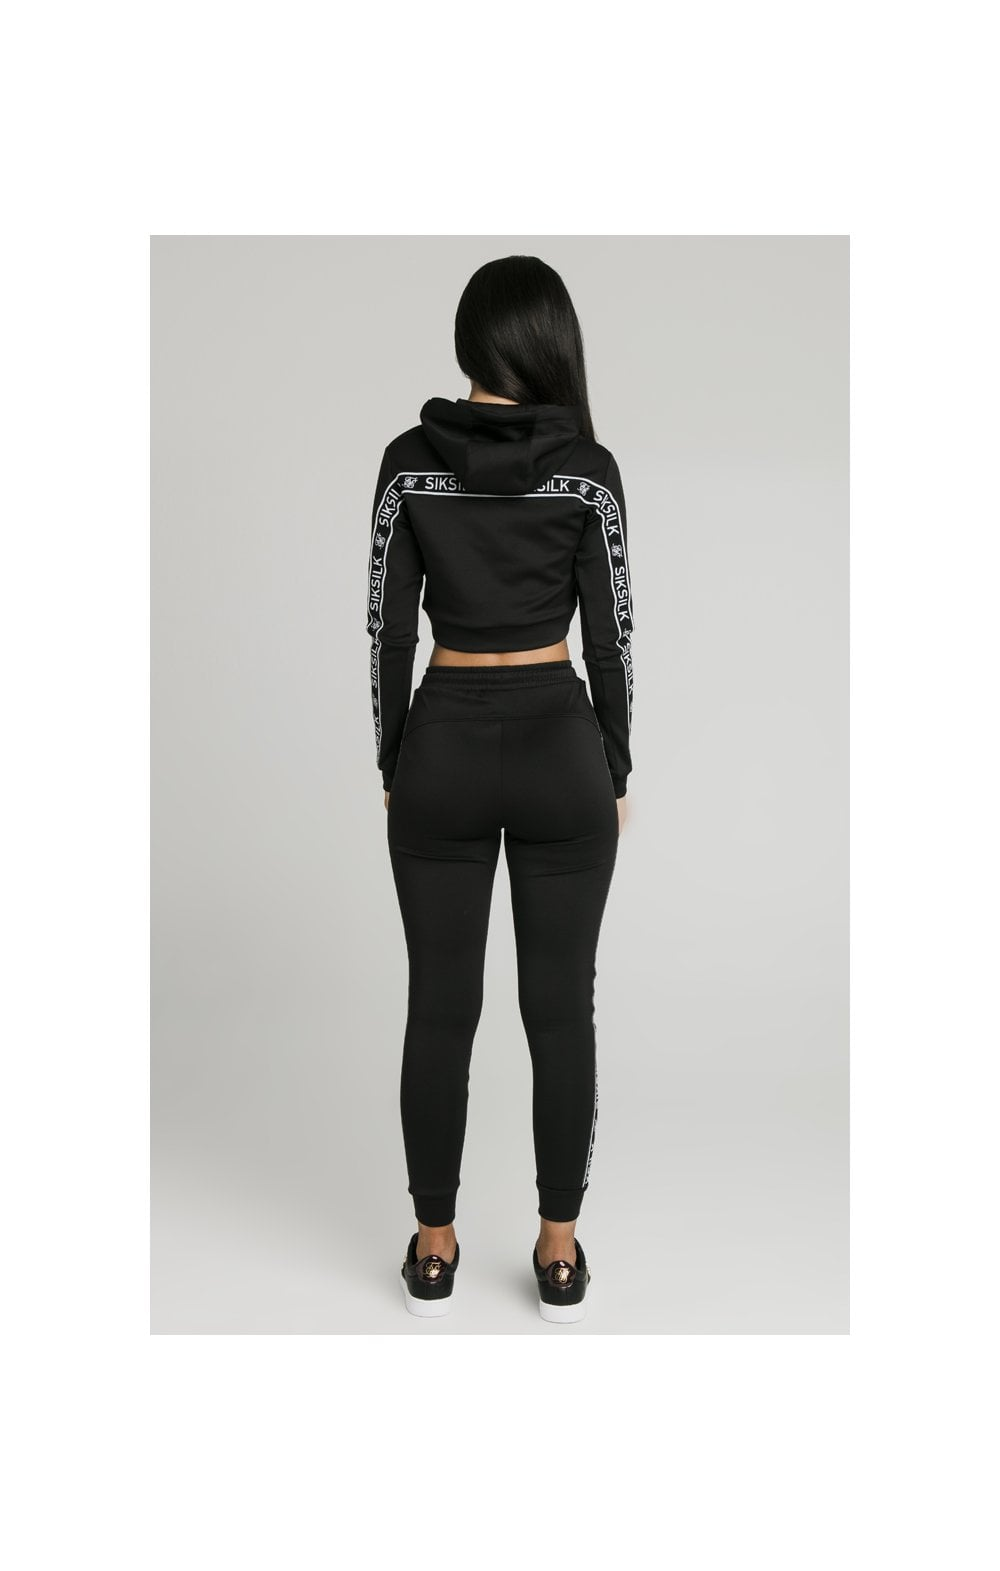 SikSilk Arc Tech Cropped Track Top - Black (6)